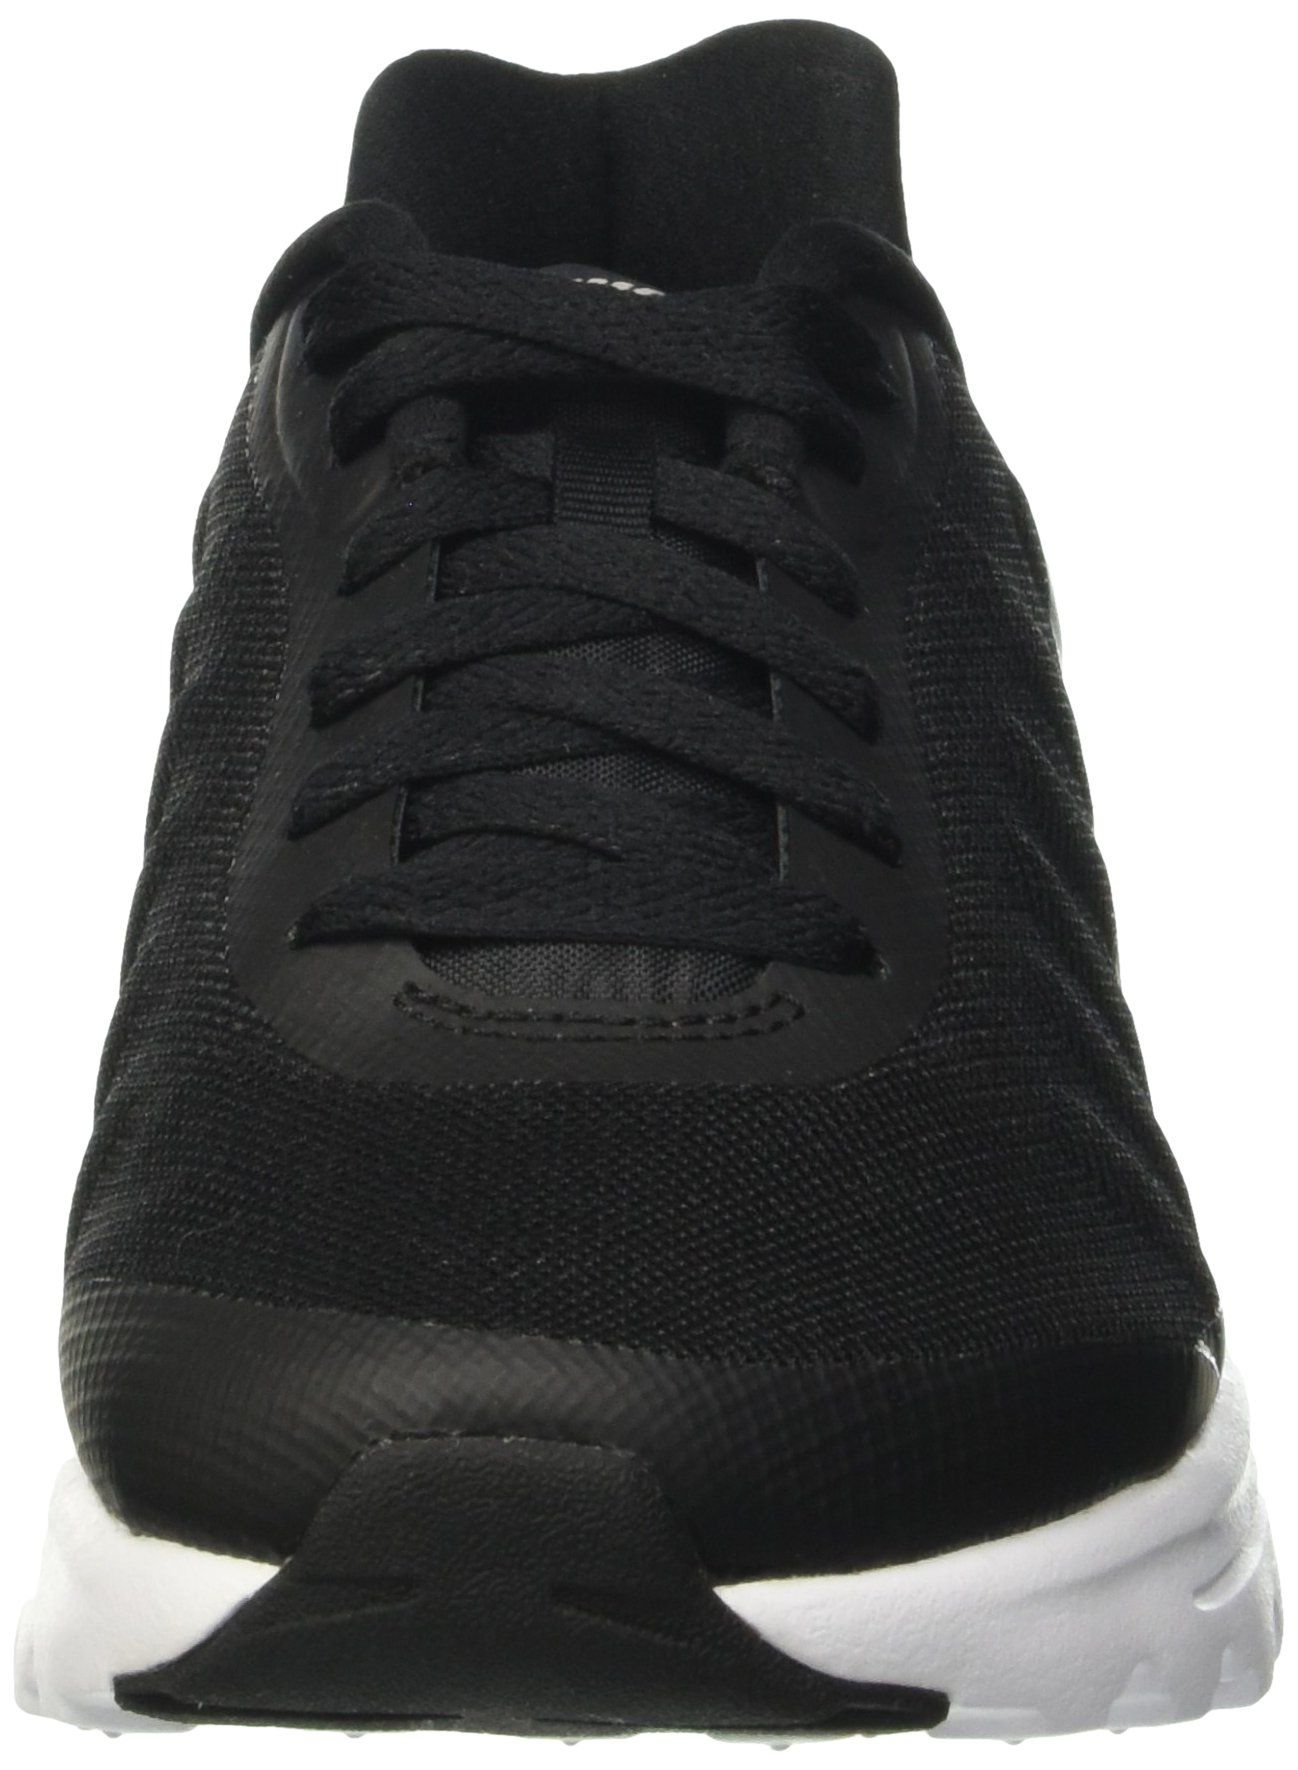 online store d5caa edba7 NIKE Womens WMNS Air Max Invigor Black Metallic SilverWhite 10.5 US      Learn more by visiting the image link. (This is an affiliate link)   ...